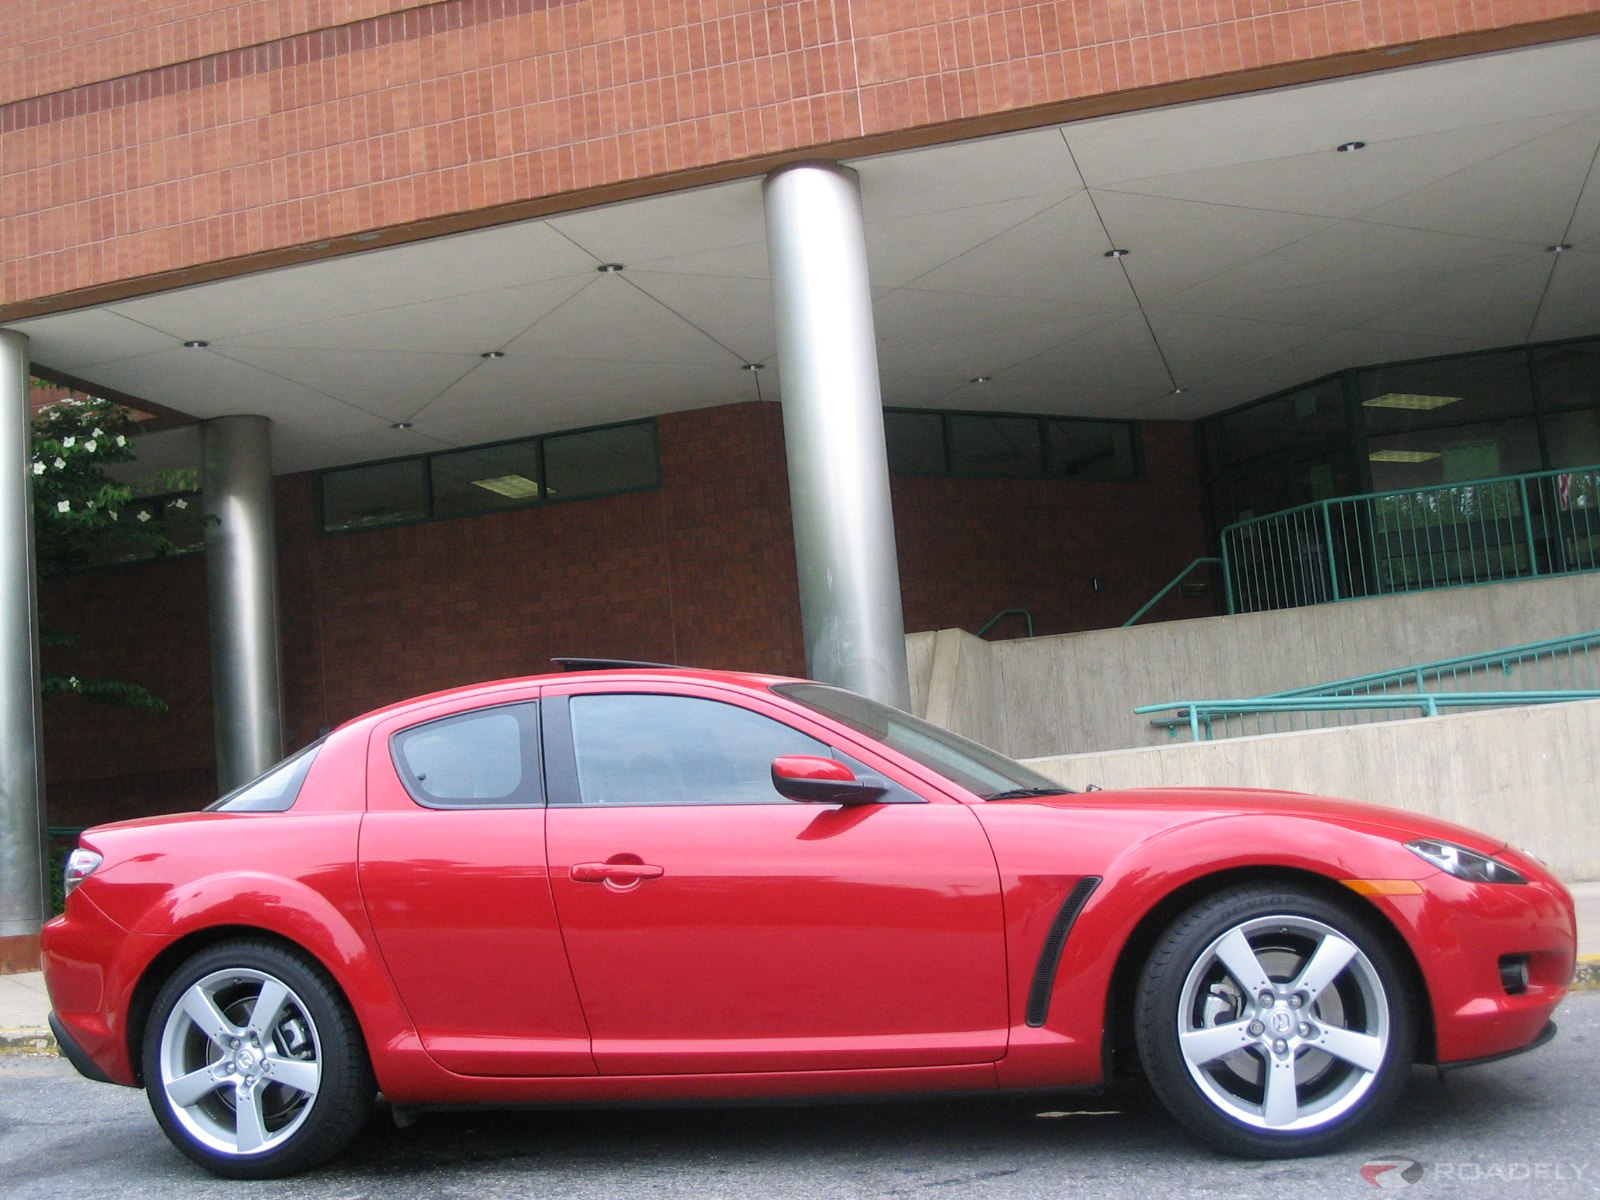 2006 Mazda RX-8 - Information and photos - ZombieDrive